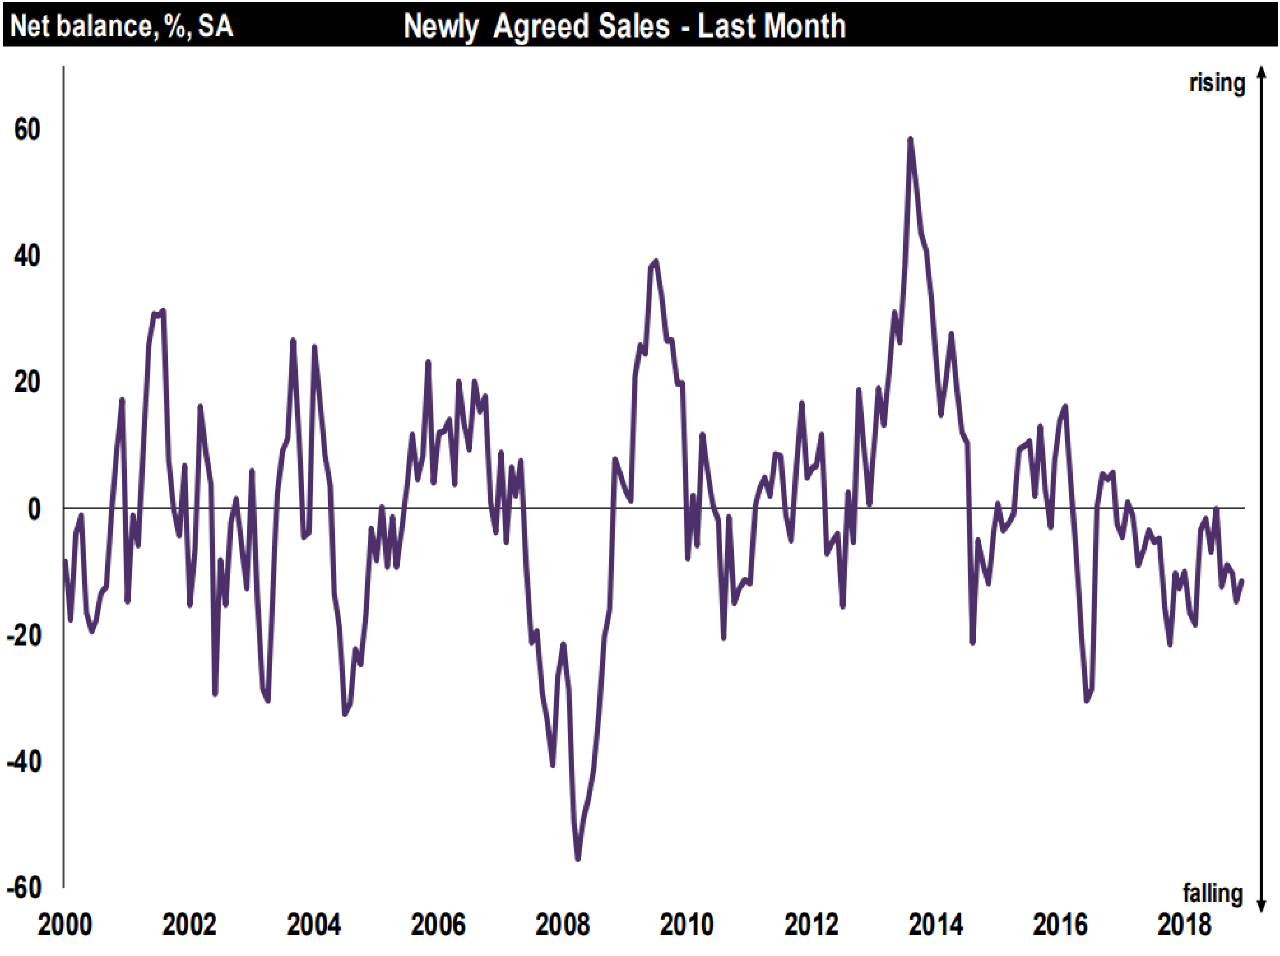 December Residential Market Survey-National Newly Agreed Sales-RICS